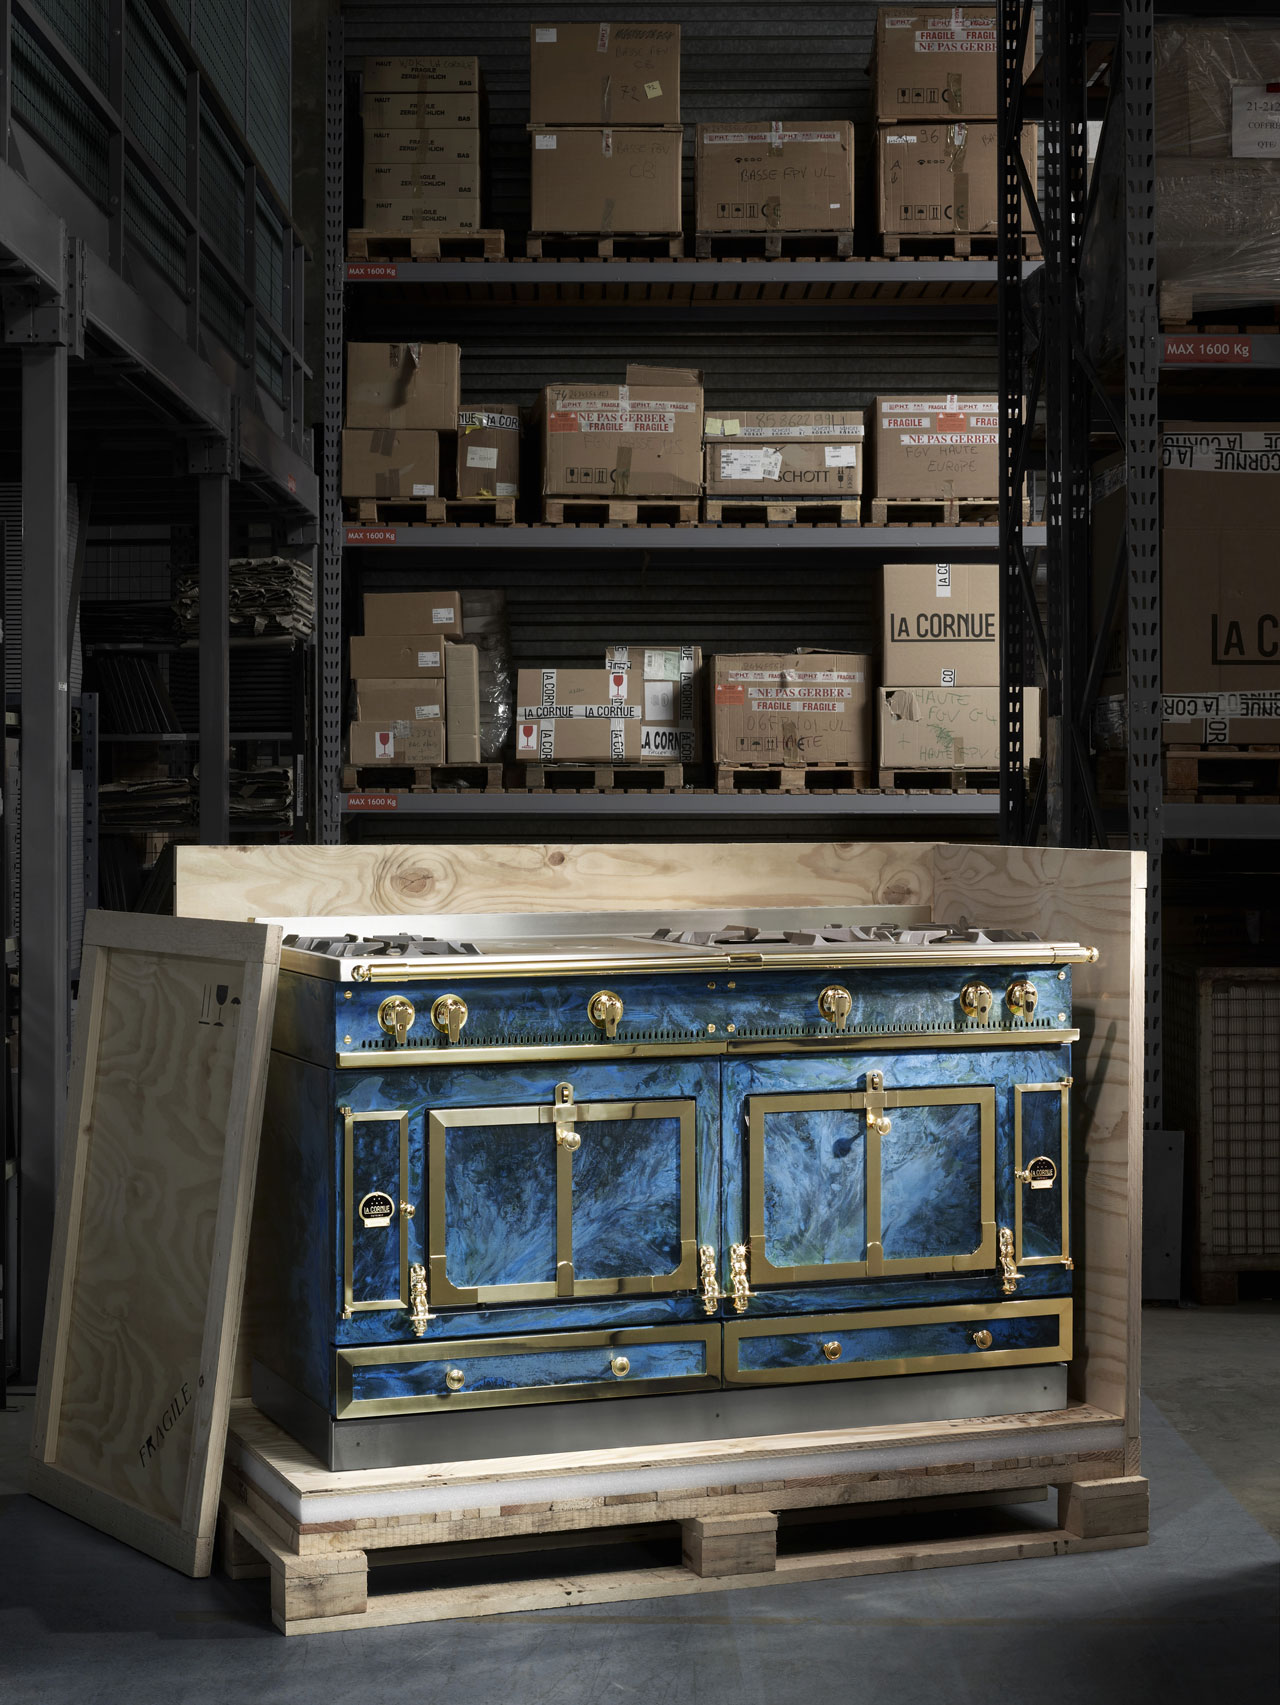 The Château kitchen by Lex Pott for La Cornue. Lex Pott has been working with oxidised and polished brass to create beautiful electric blue textures.